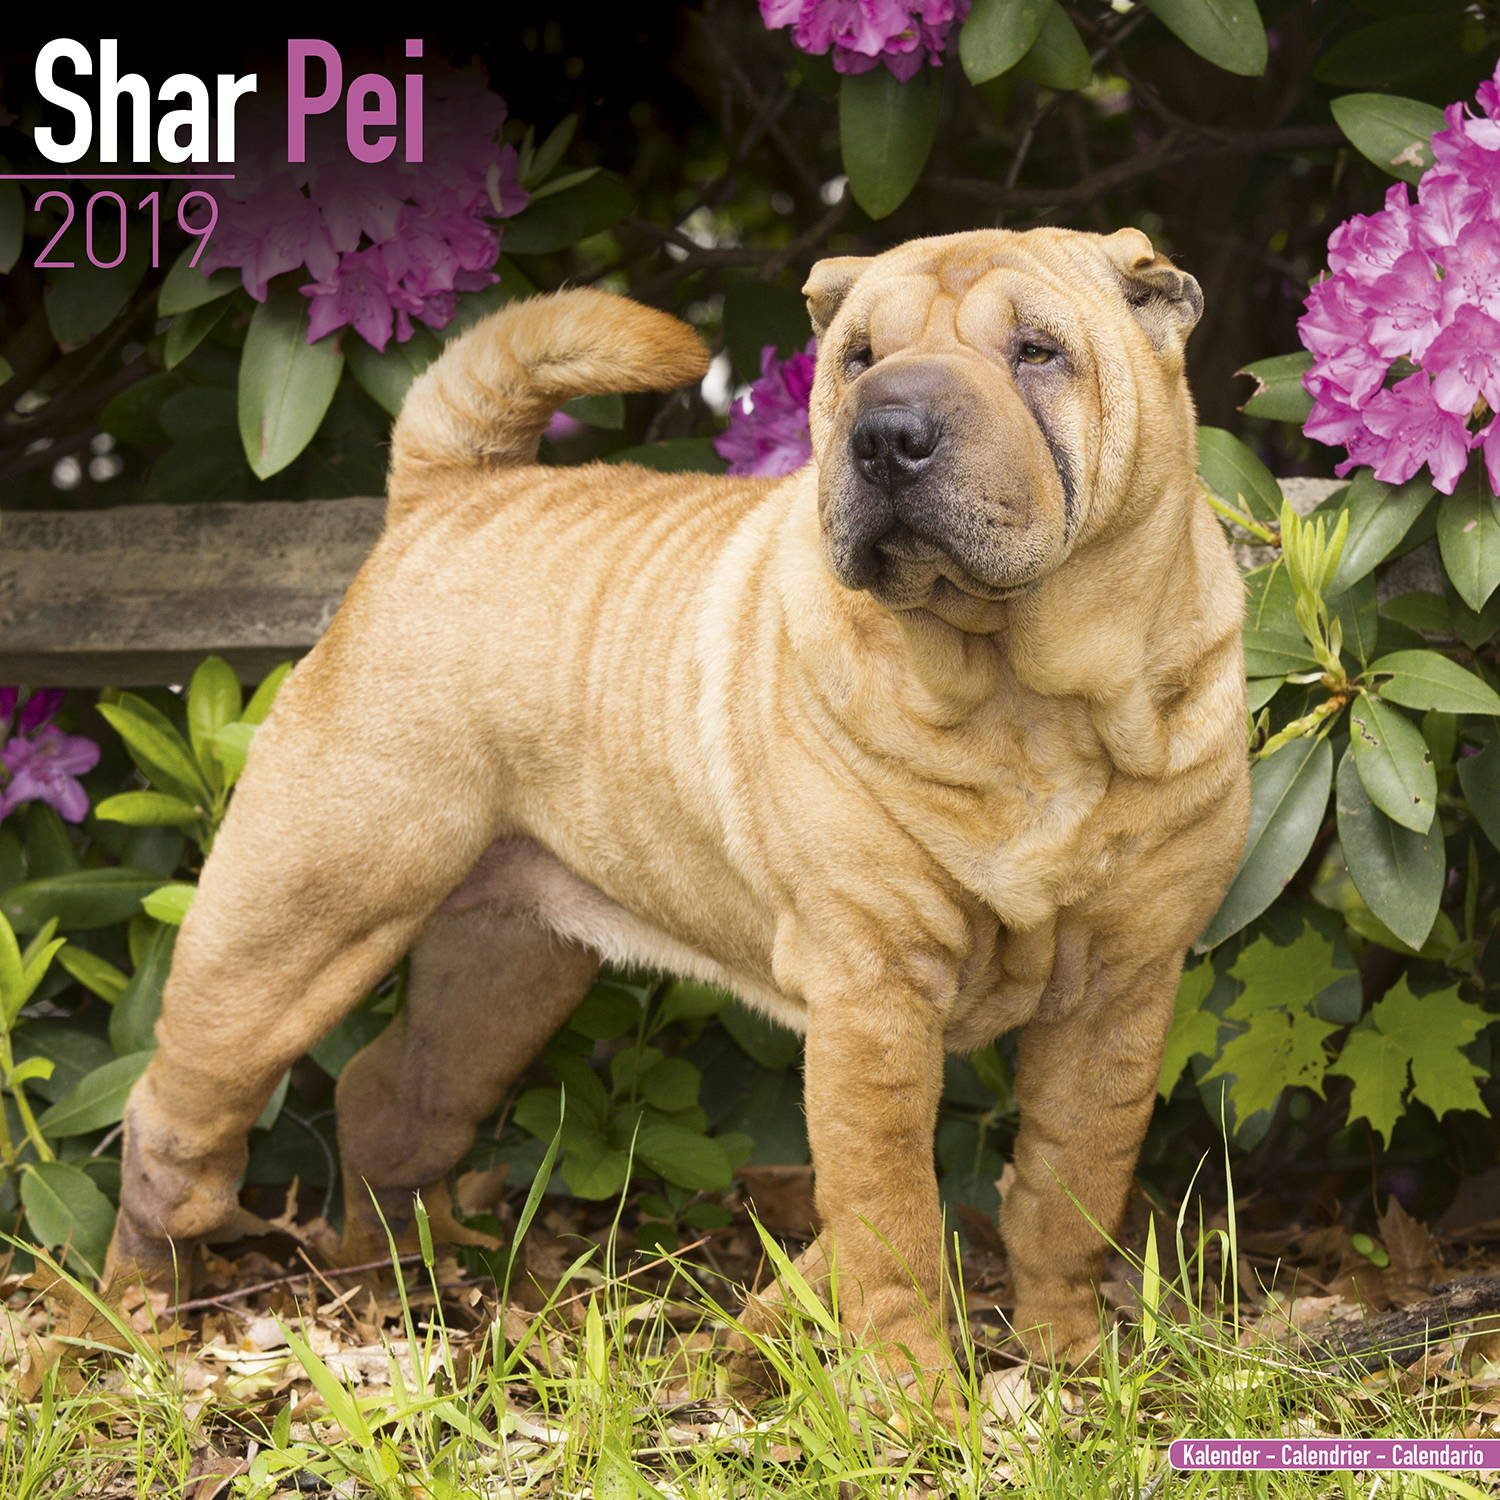 shar pei calendar dog breed calendars megacalendars. Black Bedroom Furniture Sets. Home Design Ideas